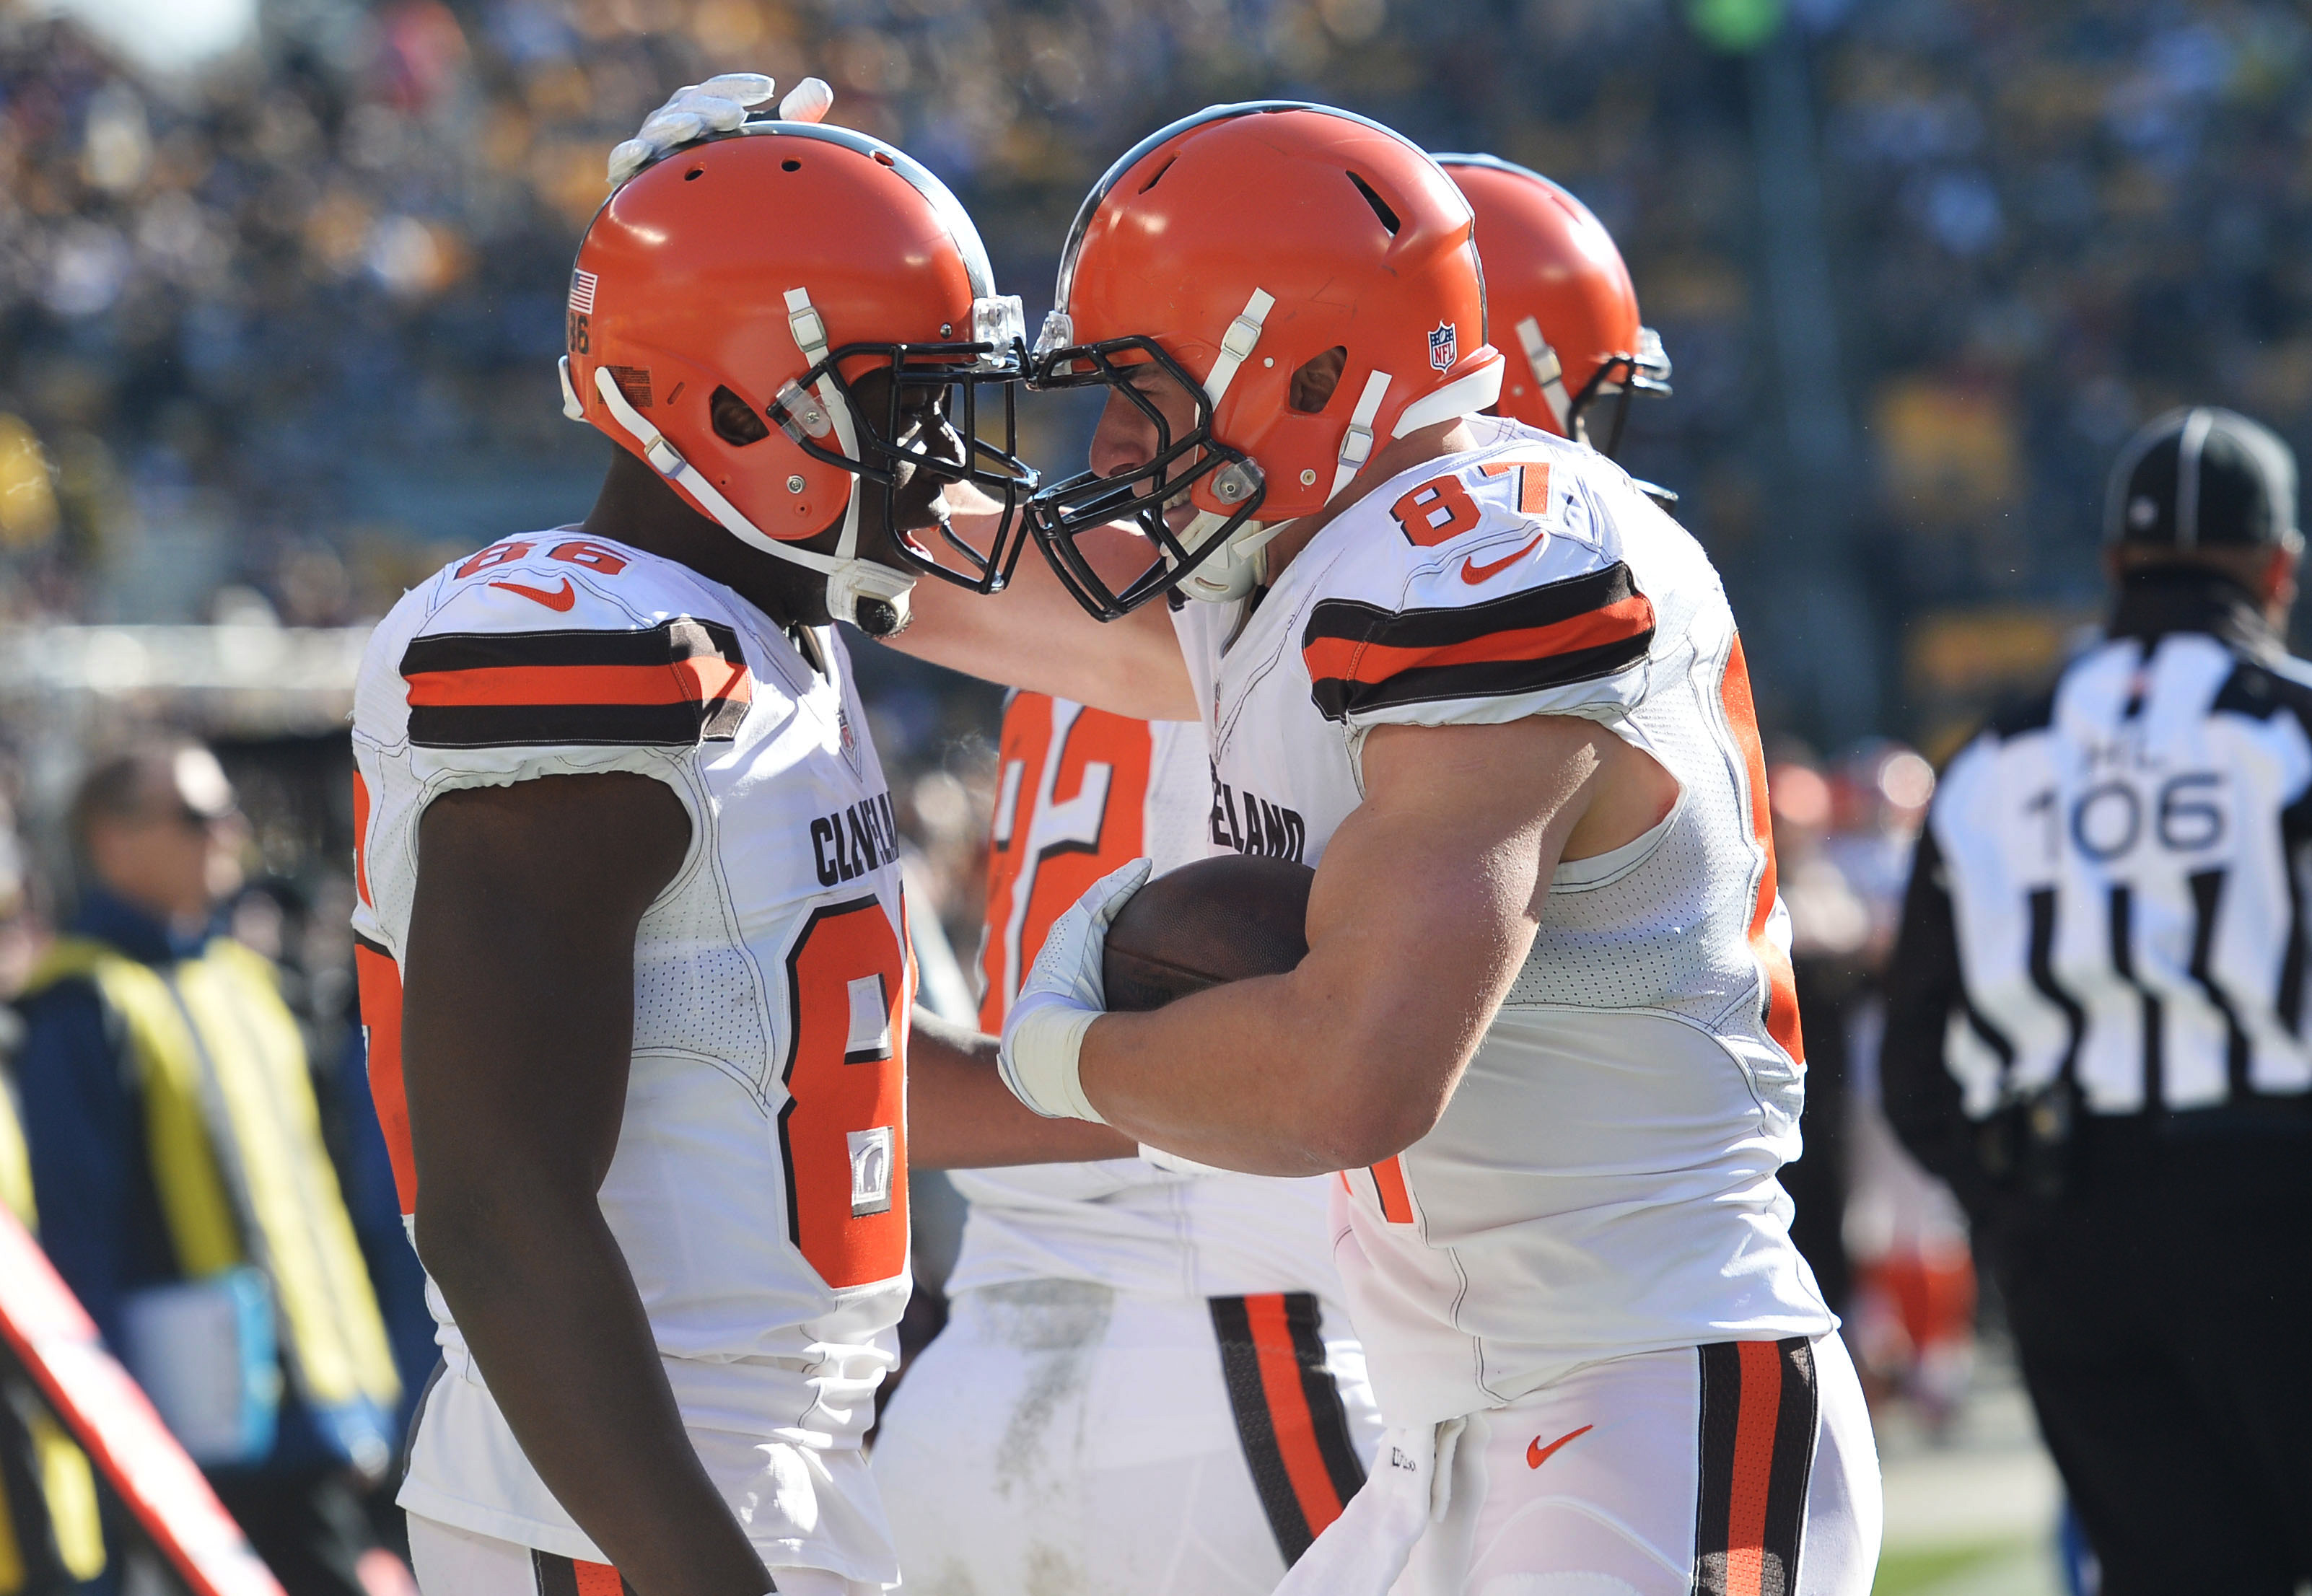 9781186-nfl-cleveland-browns-at-pittsburgh-steelers